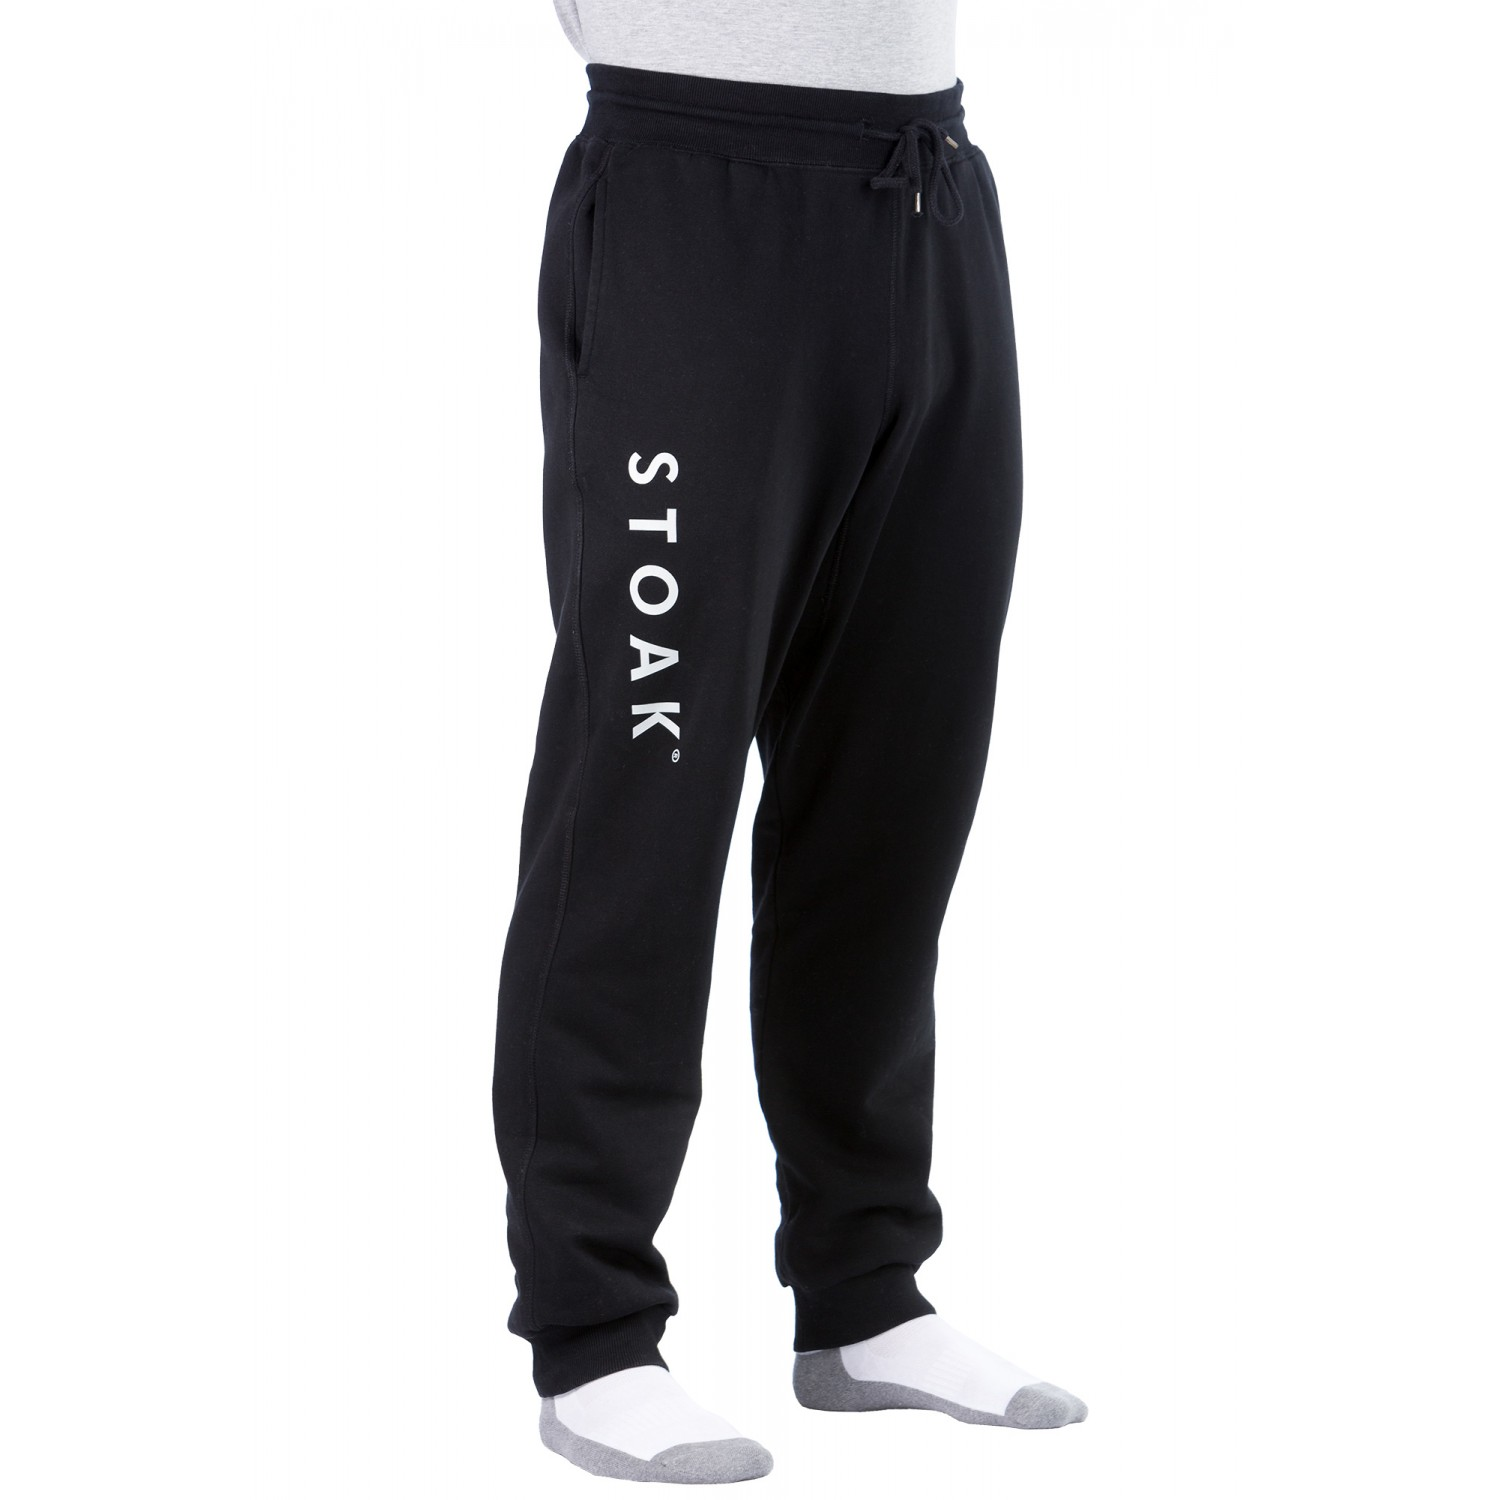 STOAK CARBON Jogger